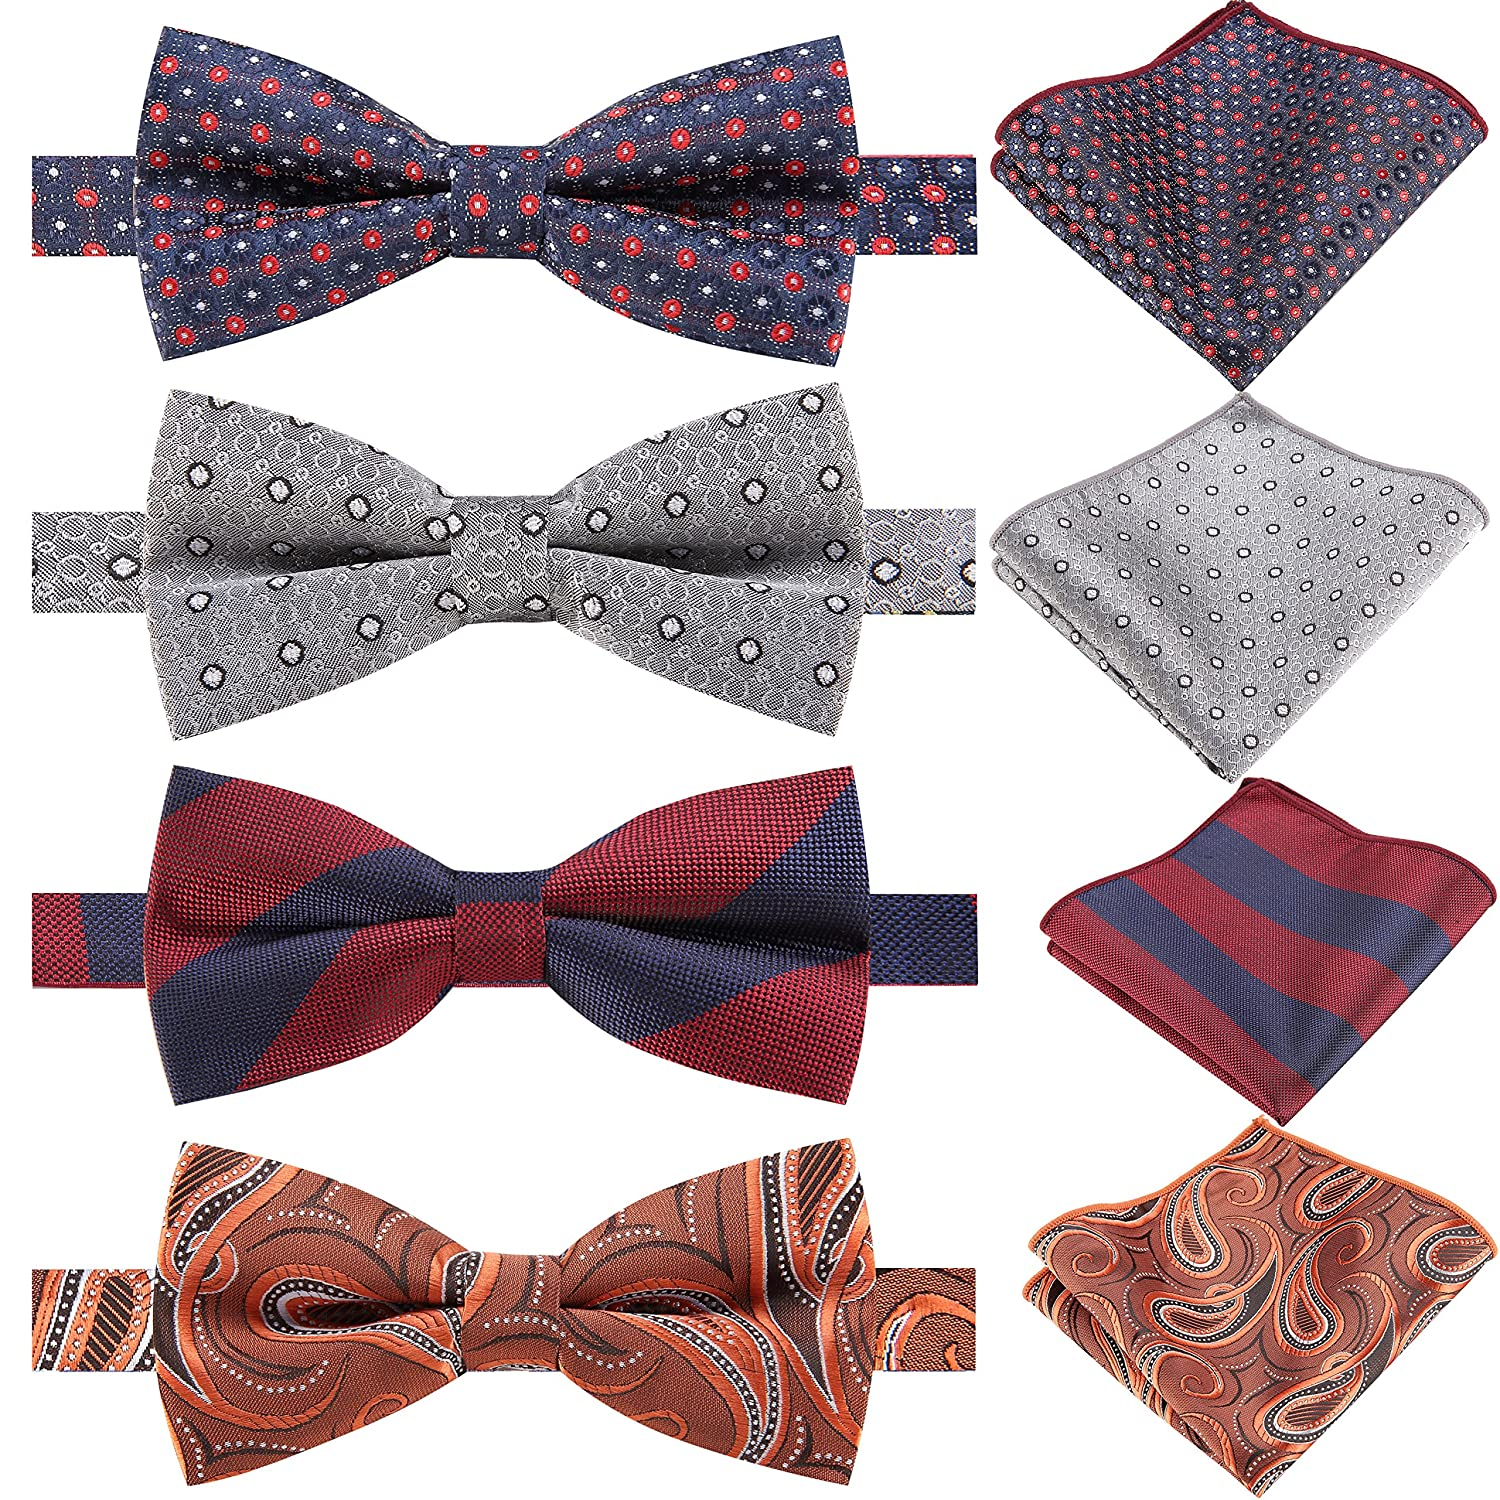 71e46b1d8257 This Set comes with pre-tied bow ties and pocket square in assorted colors  and patterns,it included grey bowtie,Wine (red) bow tie,Paisley bow tie,  etc, ...